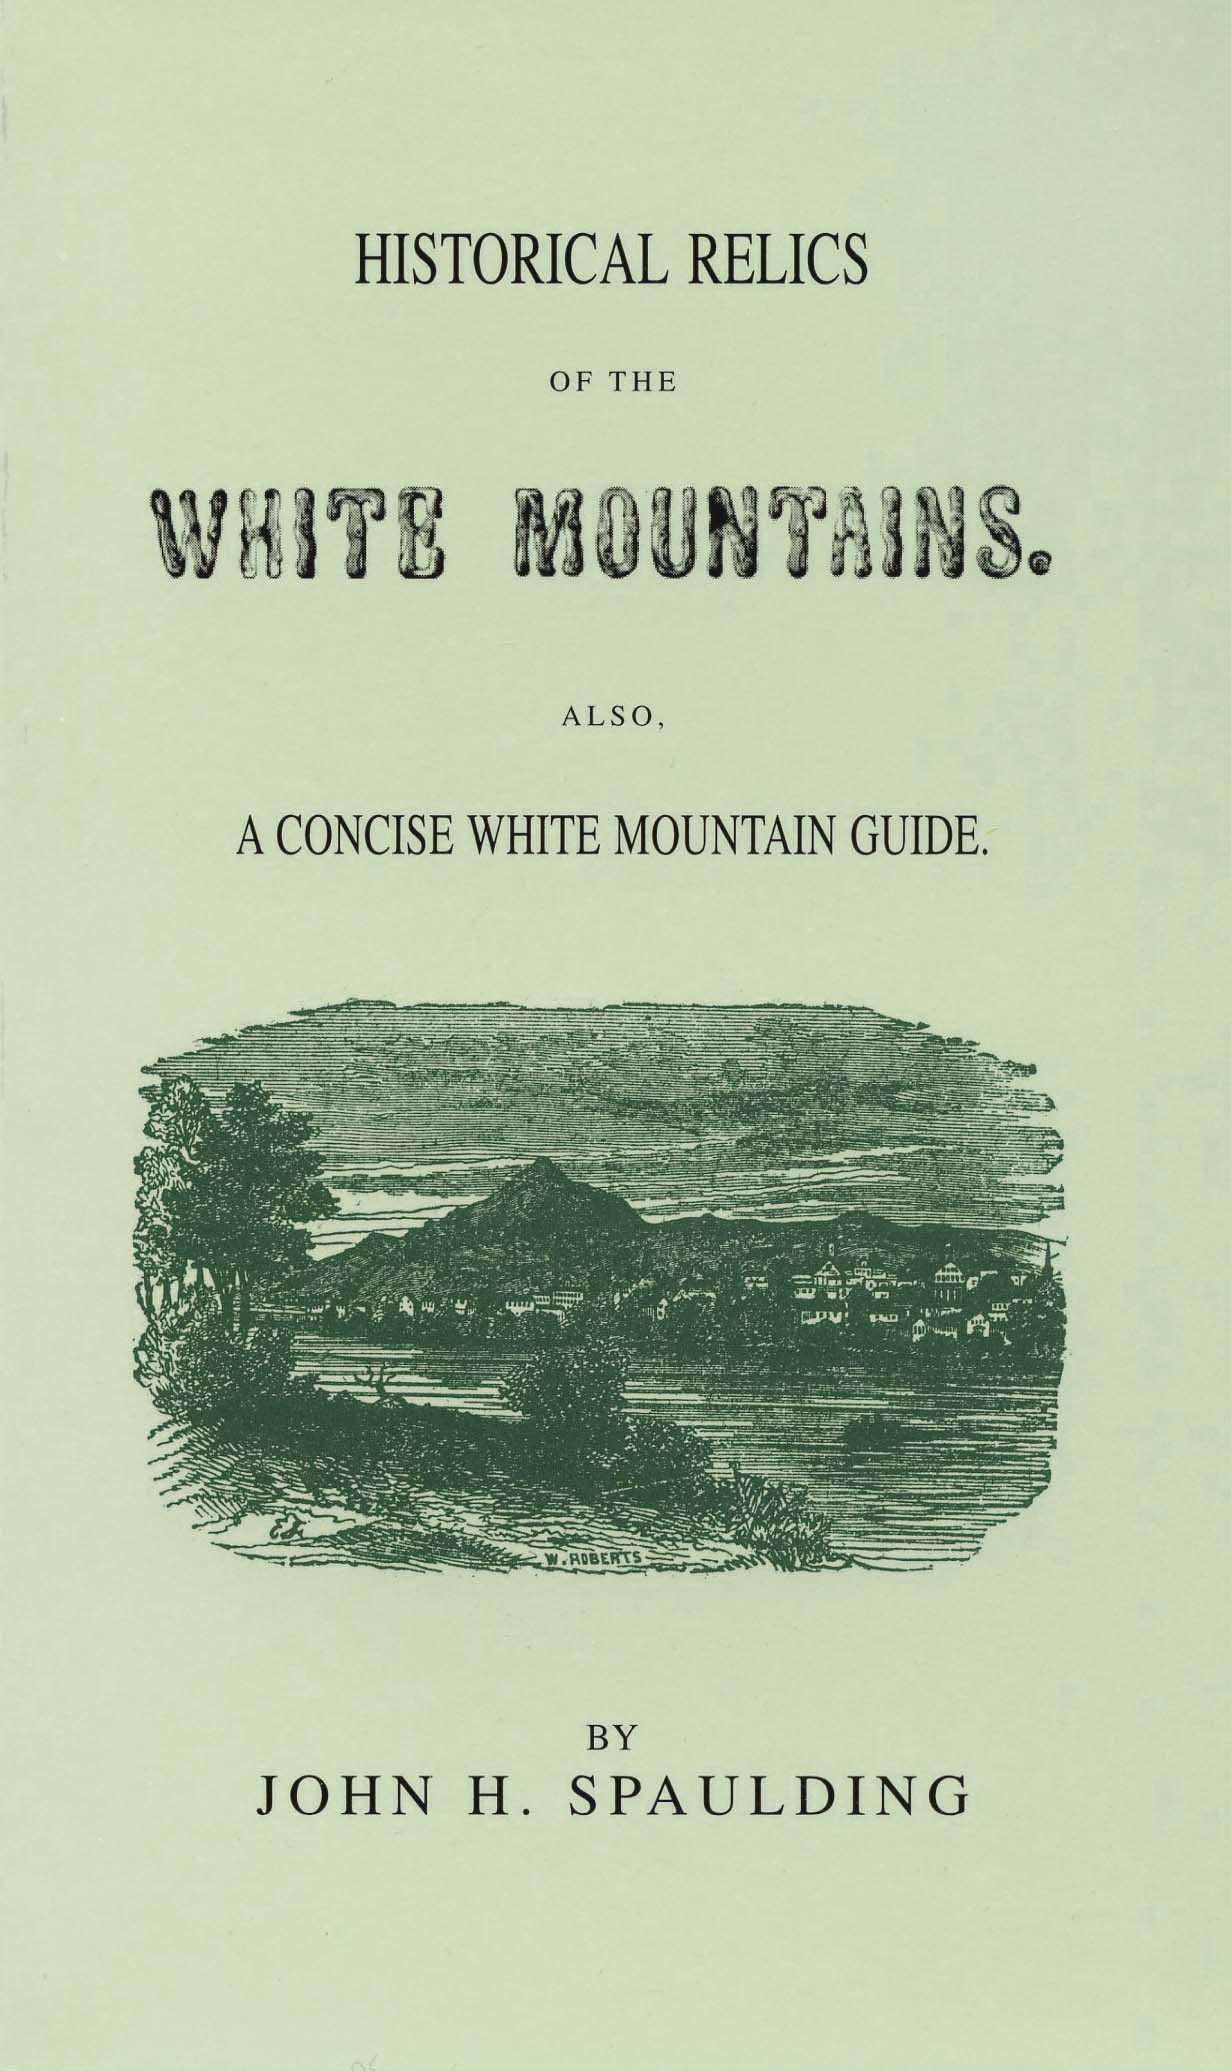 Historical Relics of the White Mountains